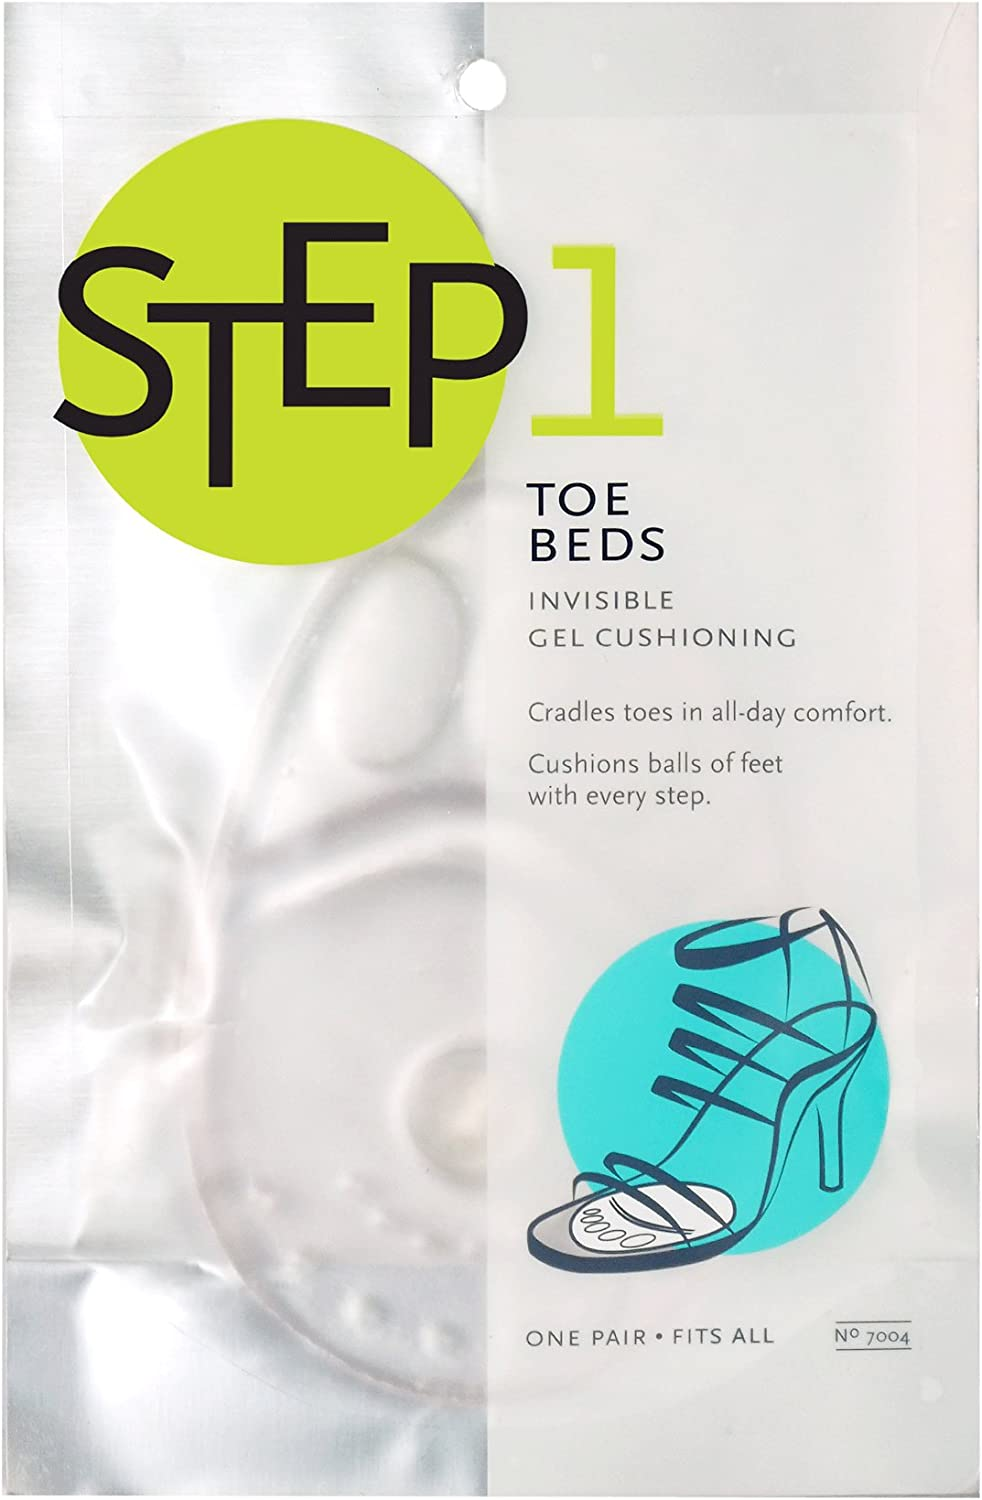 Pack of 6 1 Pair Women/'s PROFOOT Toe Beds